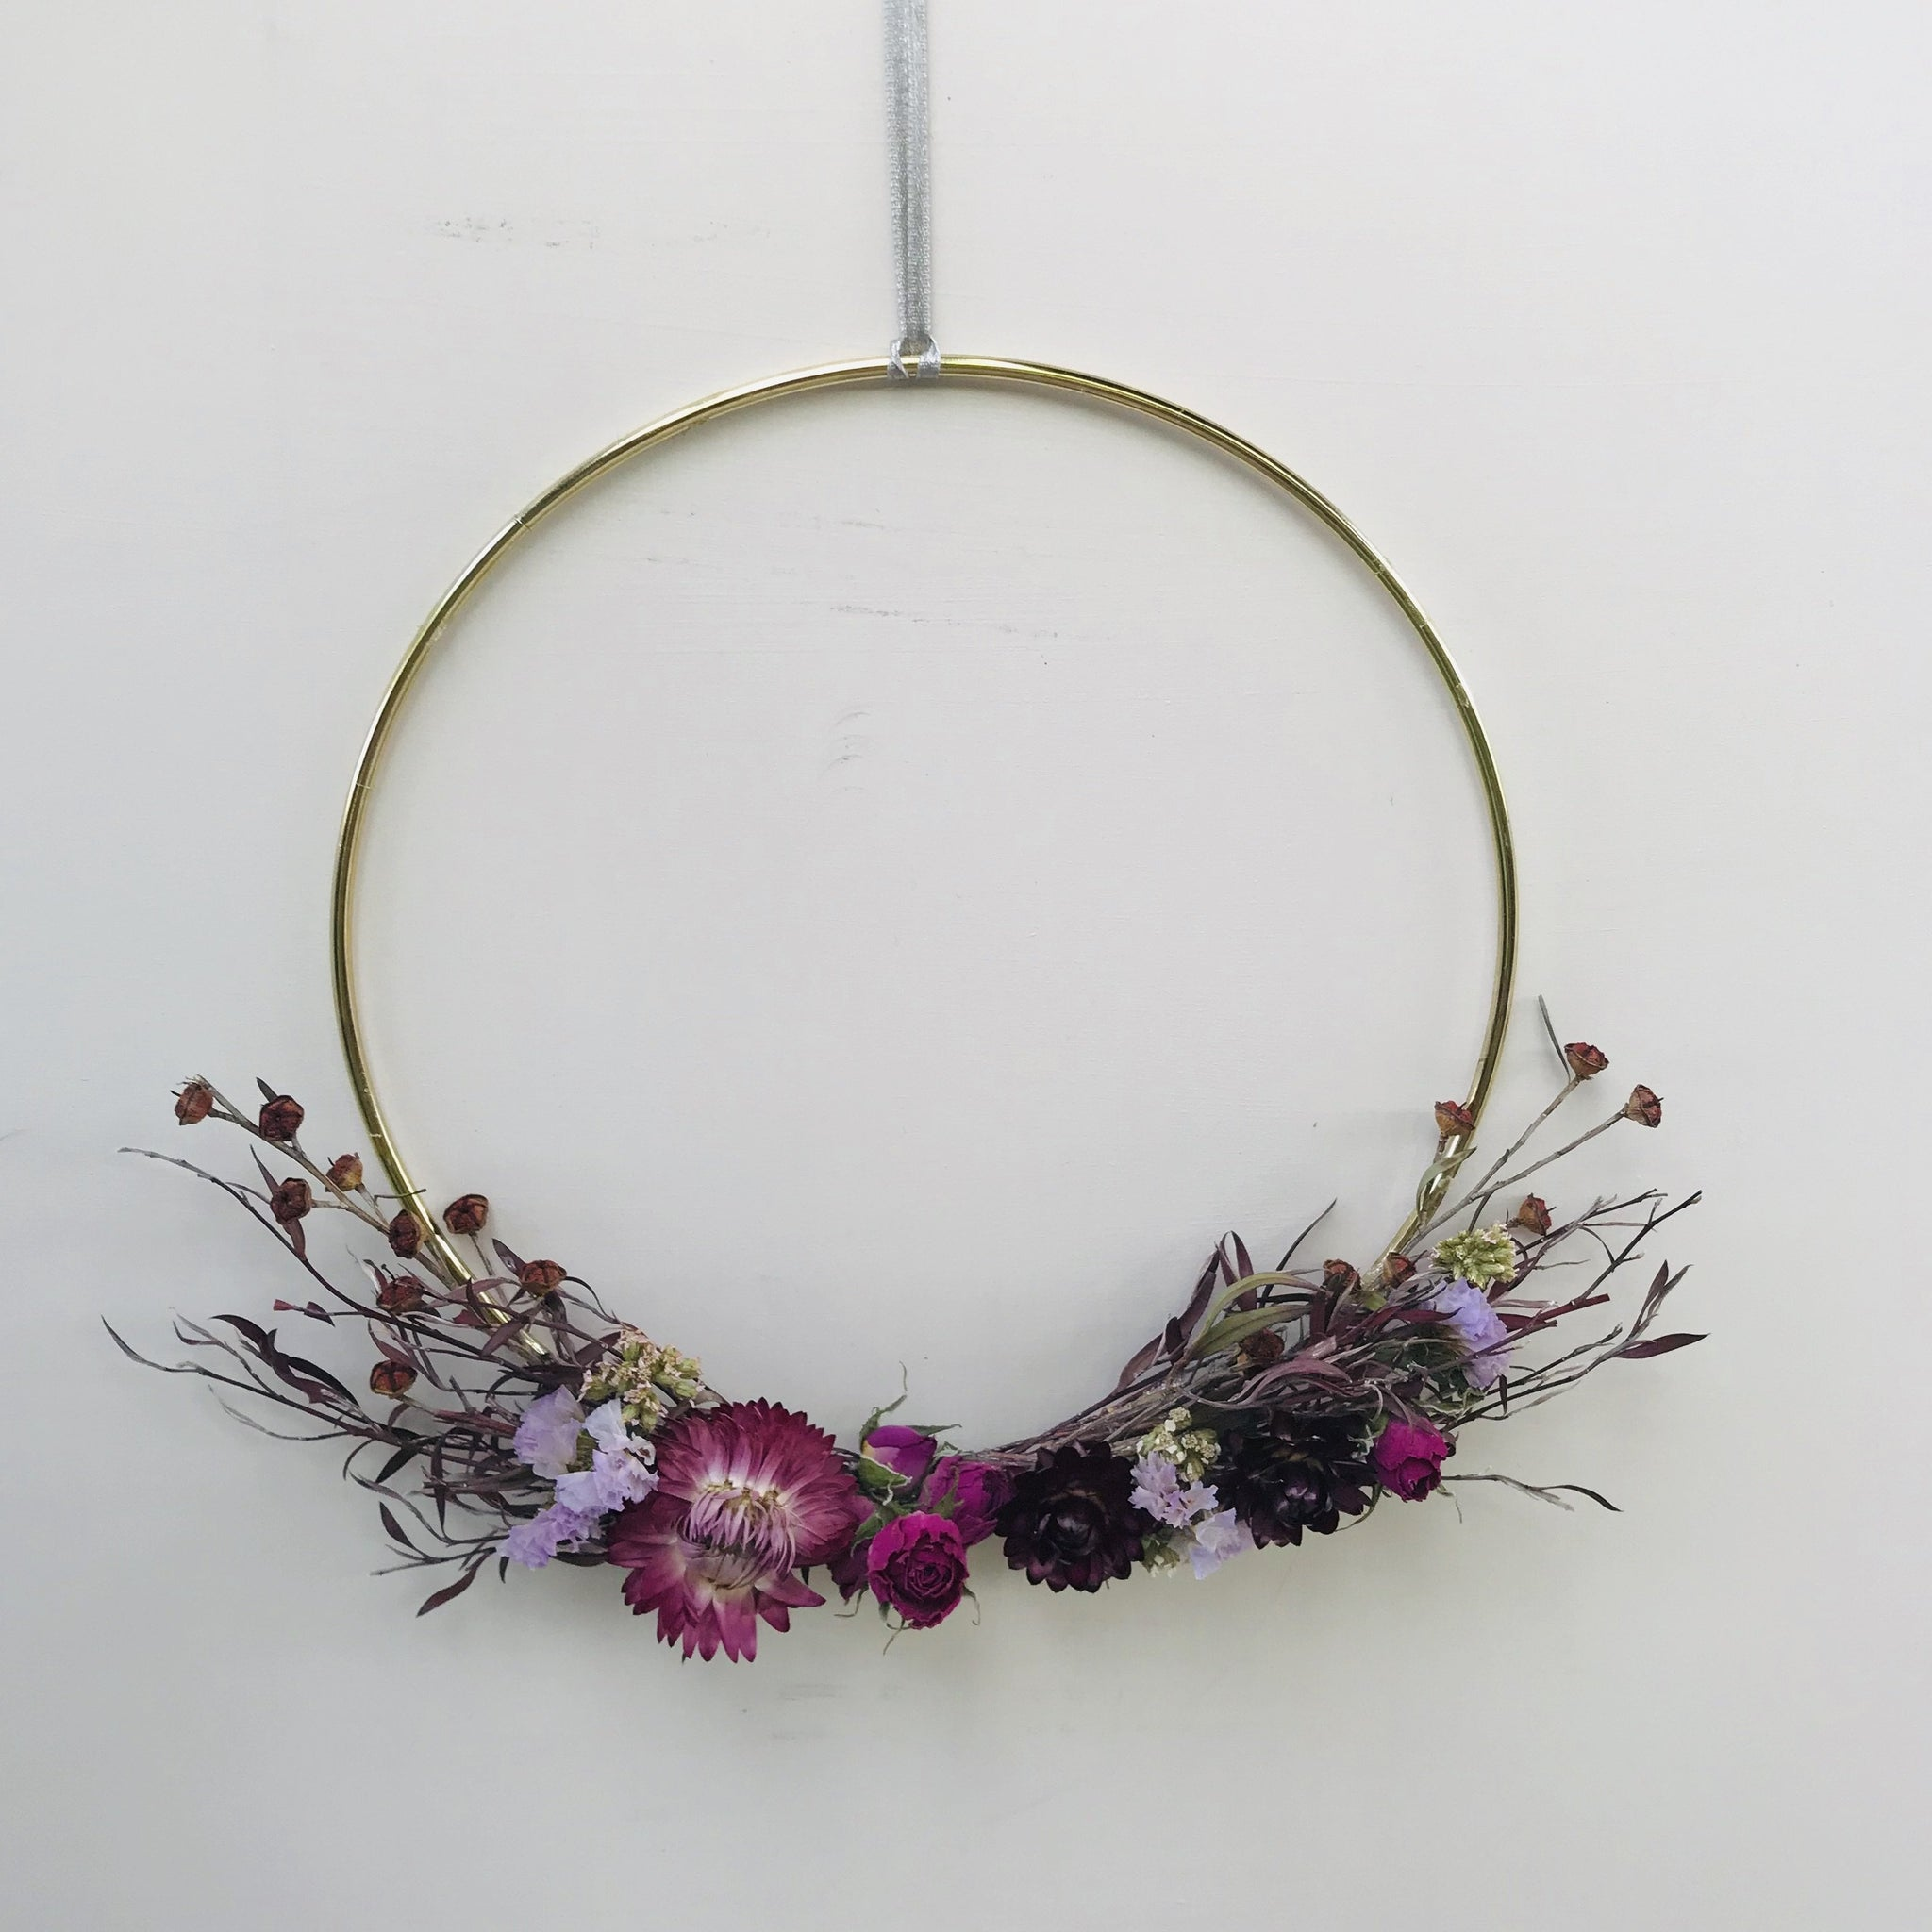 Brass Hoop Wreath